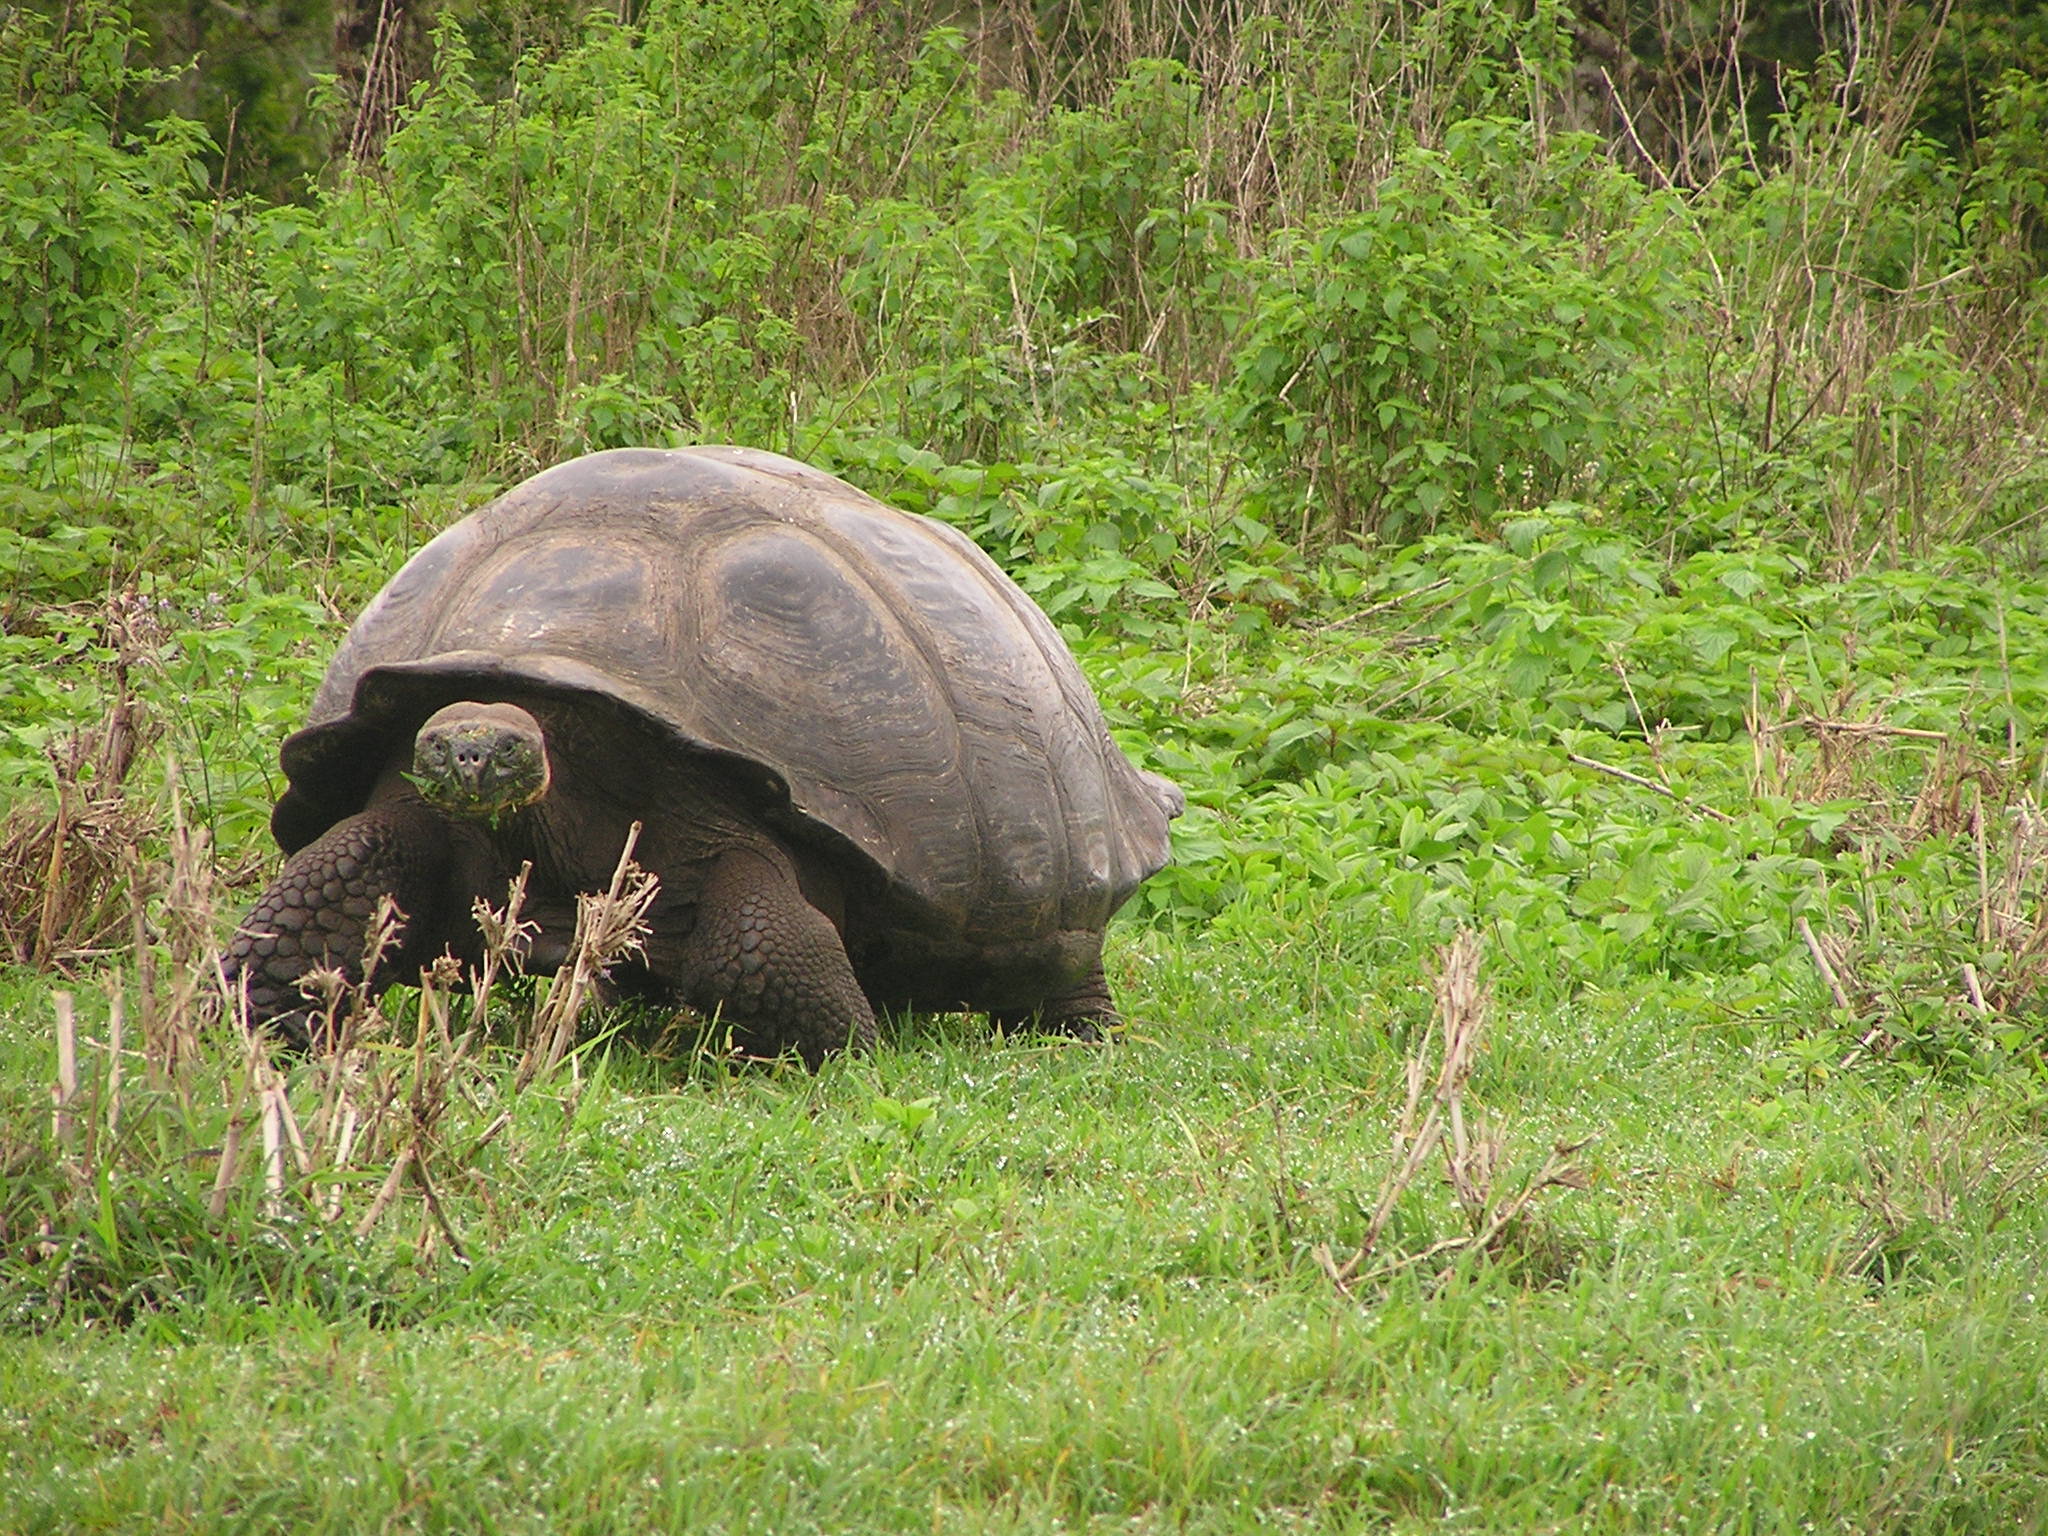 A Galápagos tortoise with domed carapace Credit: Ylenia Chiari